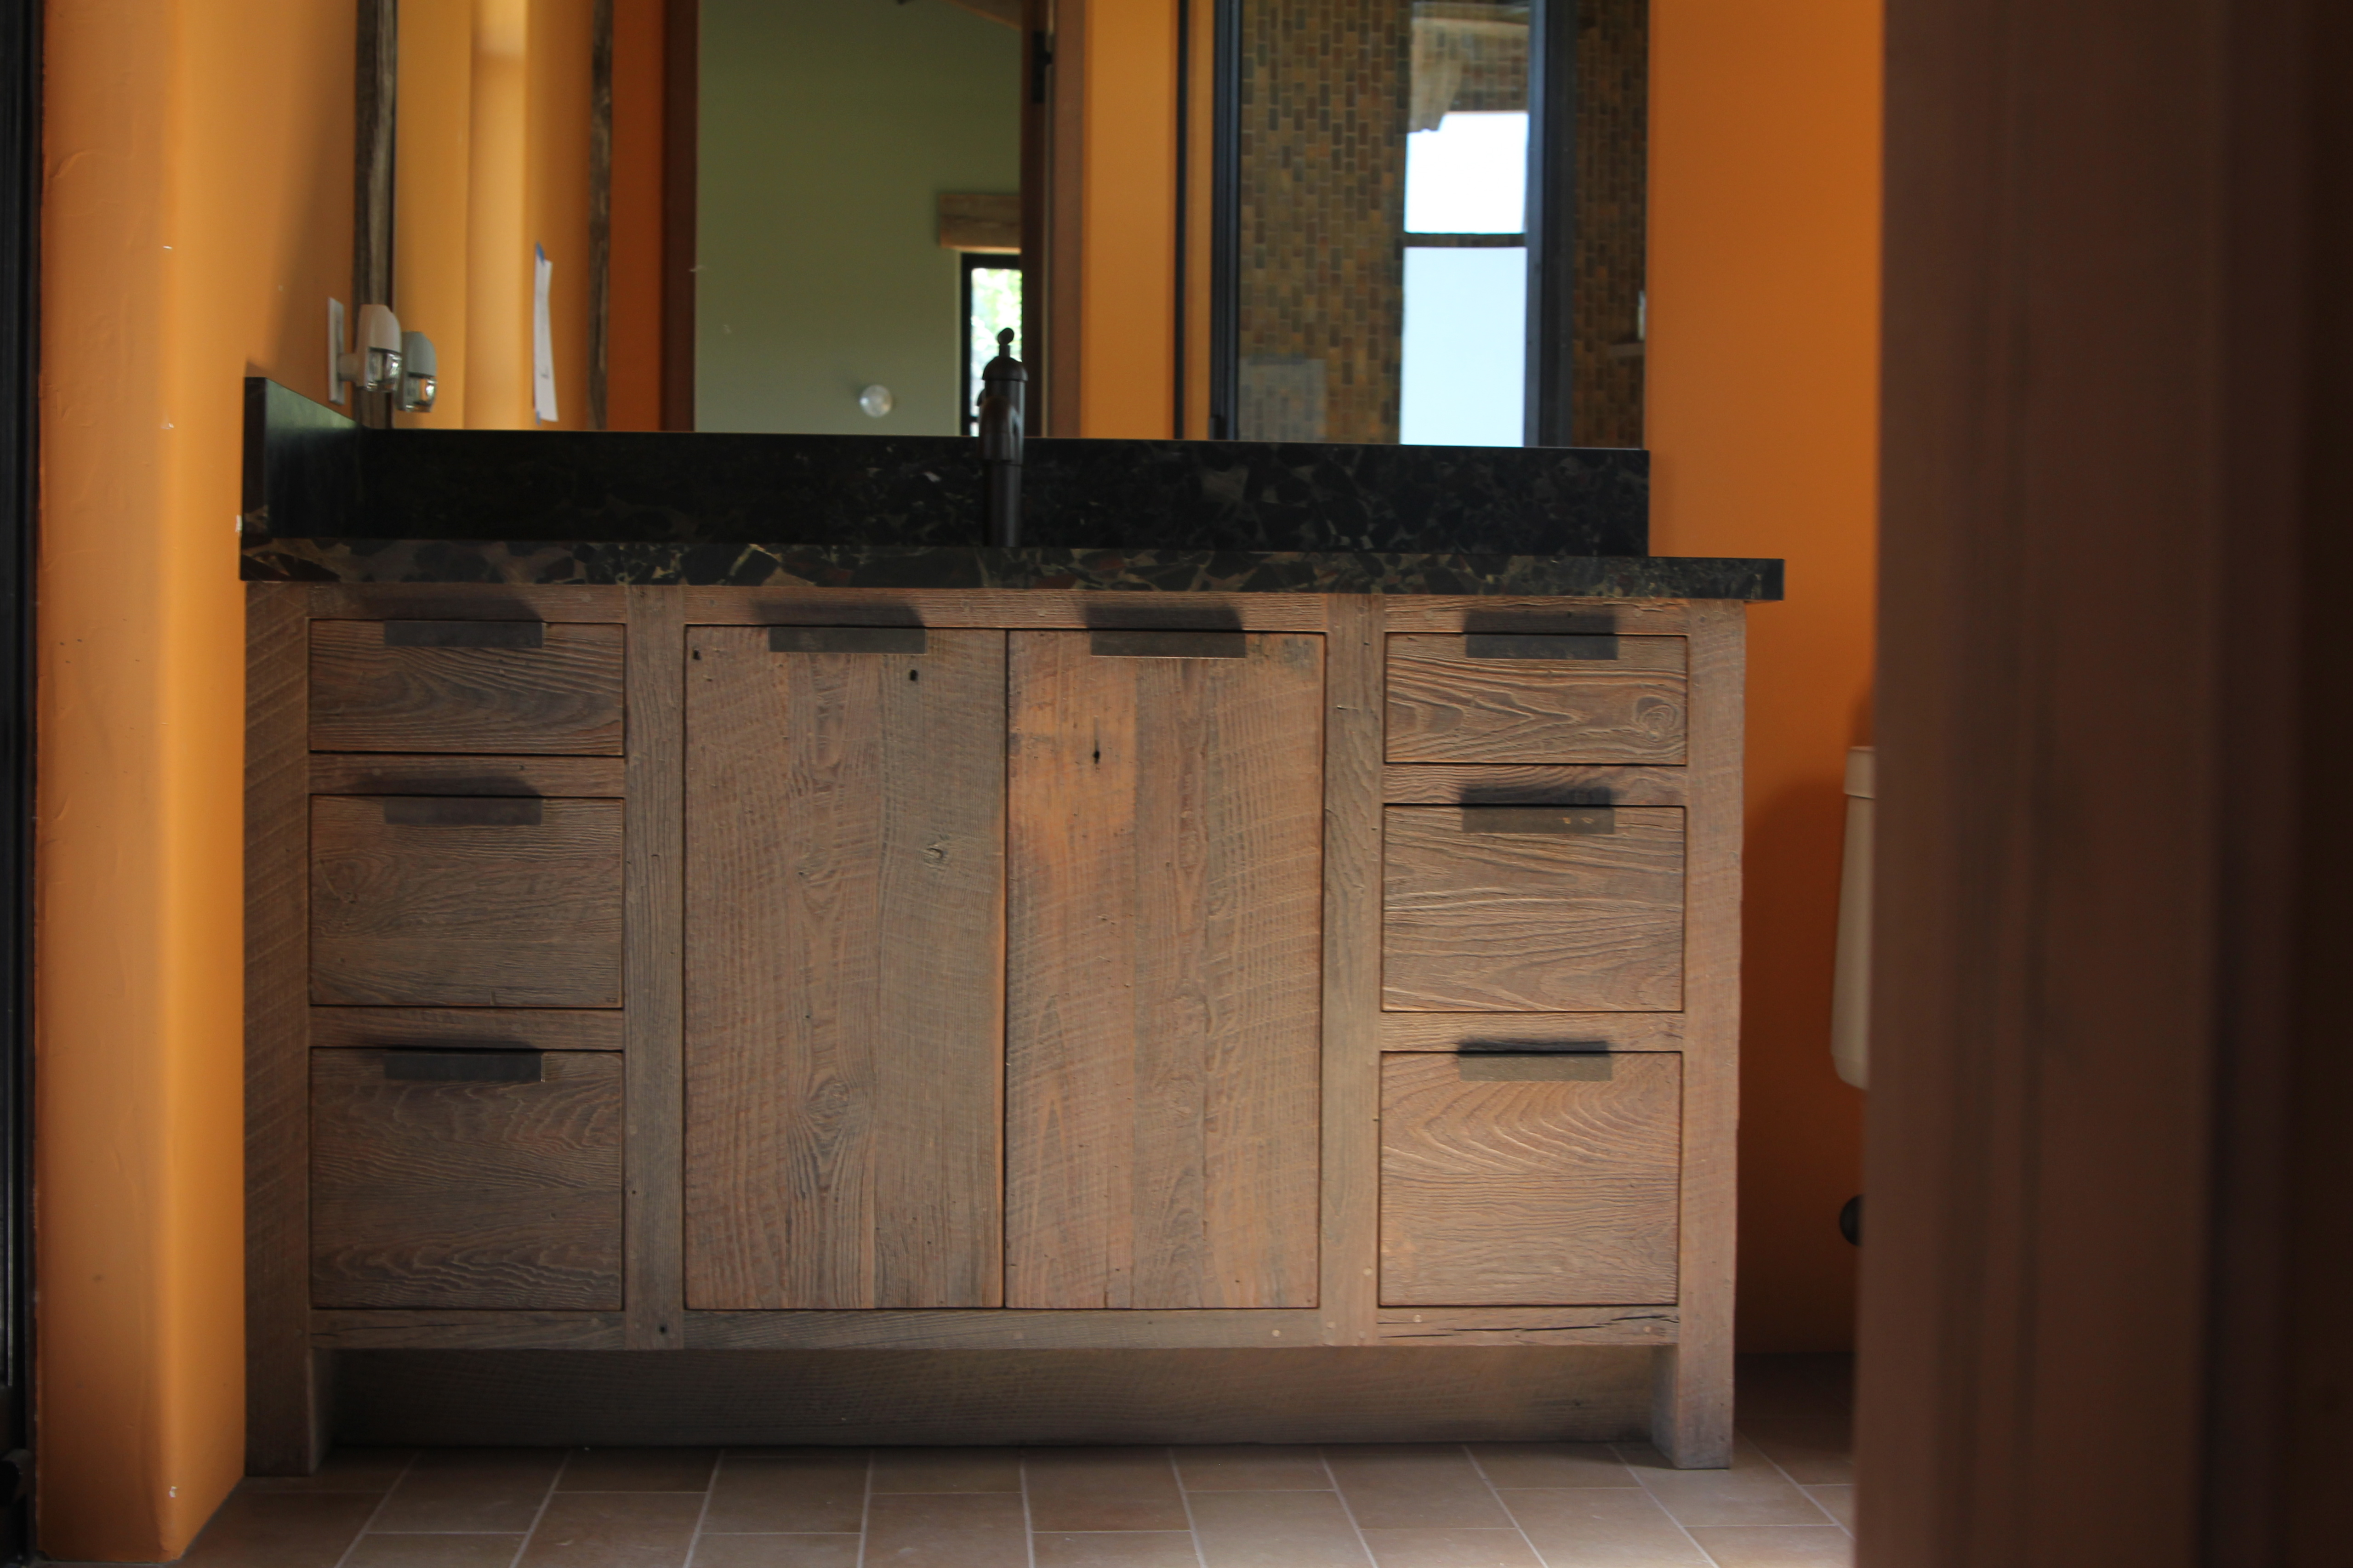 Elegant The Wooden Pallets That Cover The Walls Of This Modern Vanity Bathroom Area And The Wooden Accents Of The Interior Are The Qualities That Give This Space A Beautiful Rustic Charm They Also Provide A Natural Complement To The Trees That You